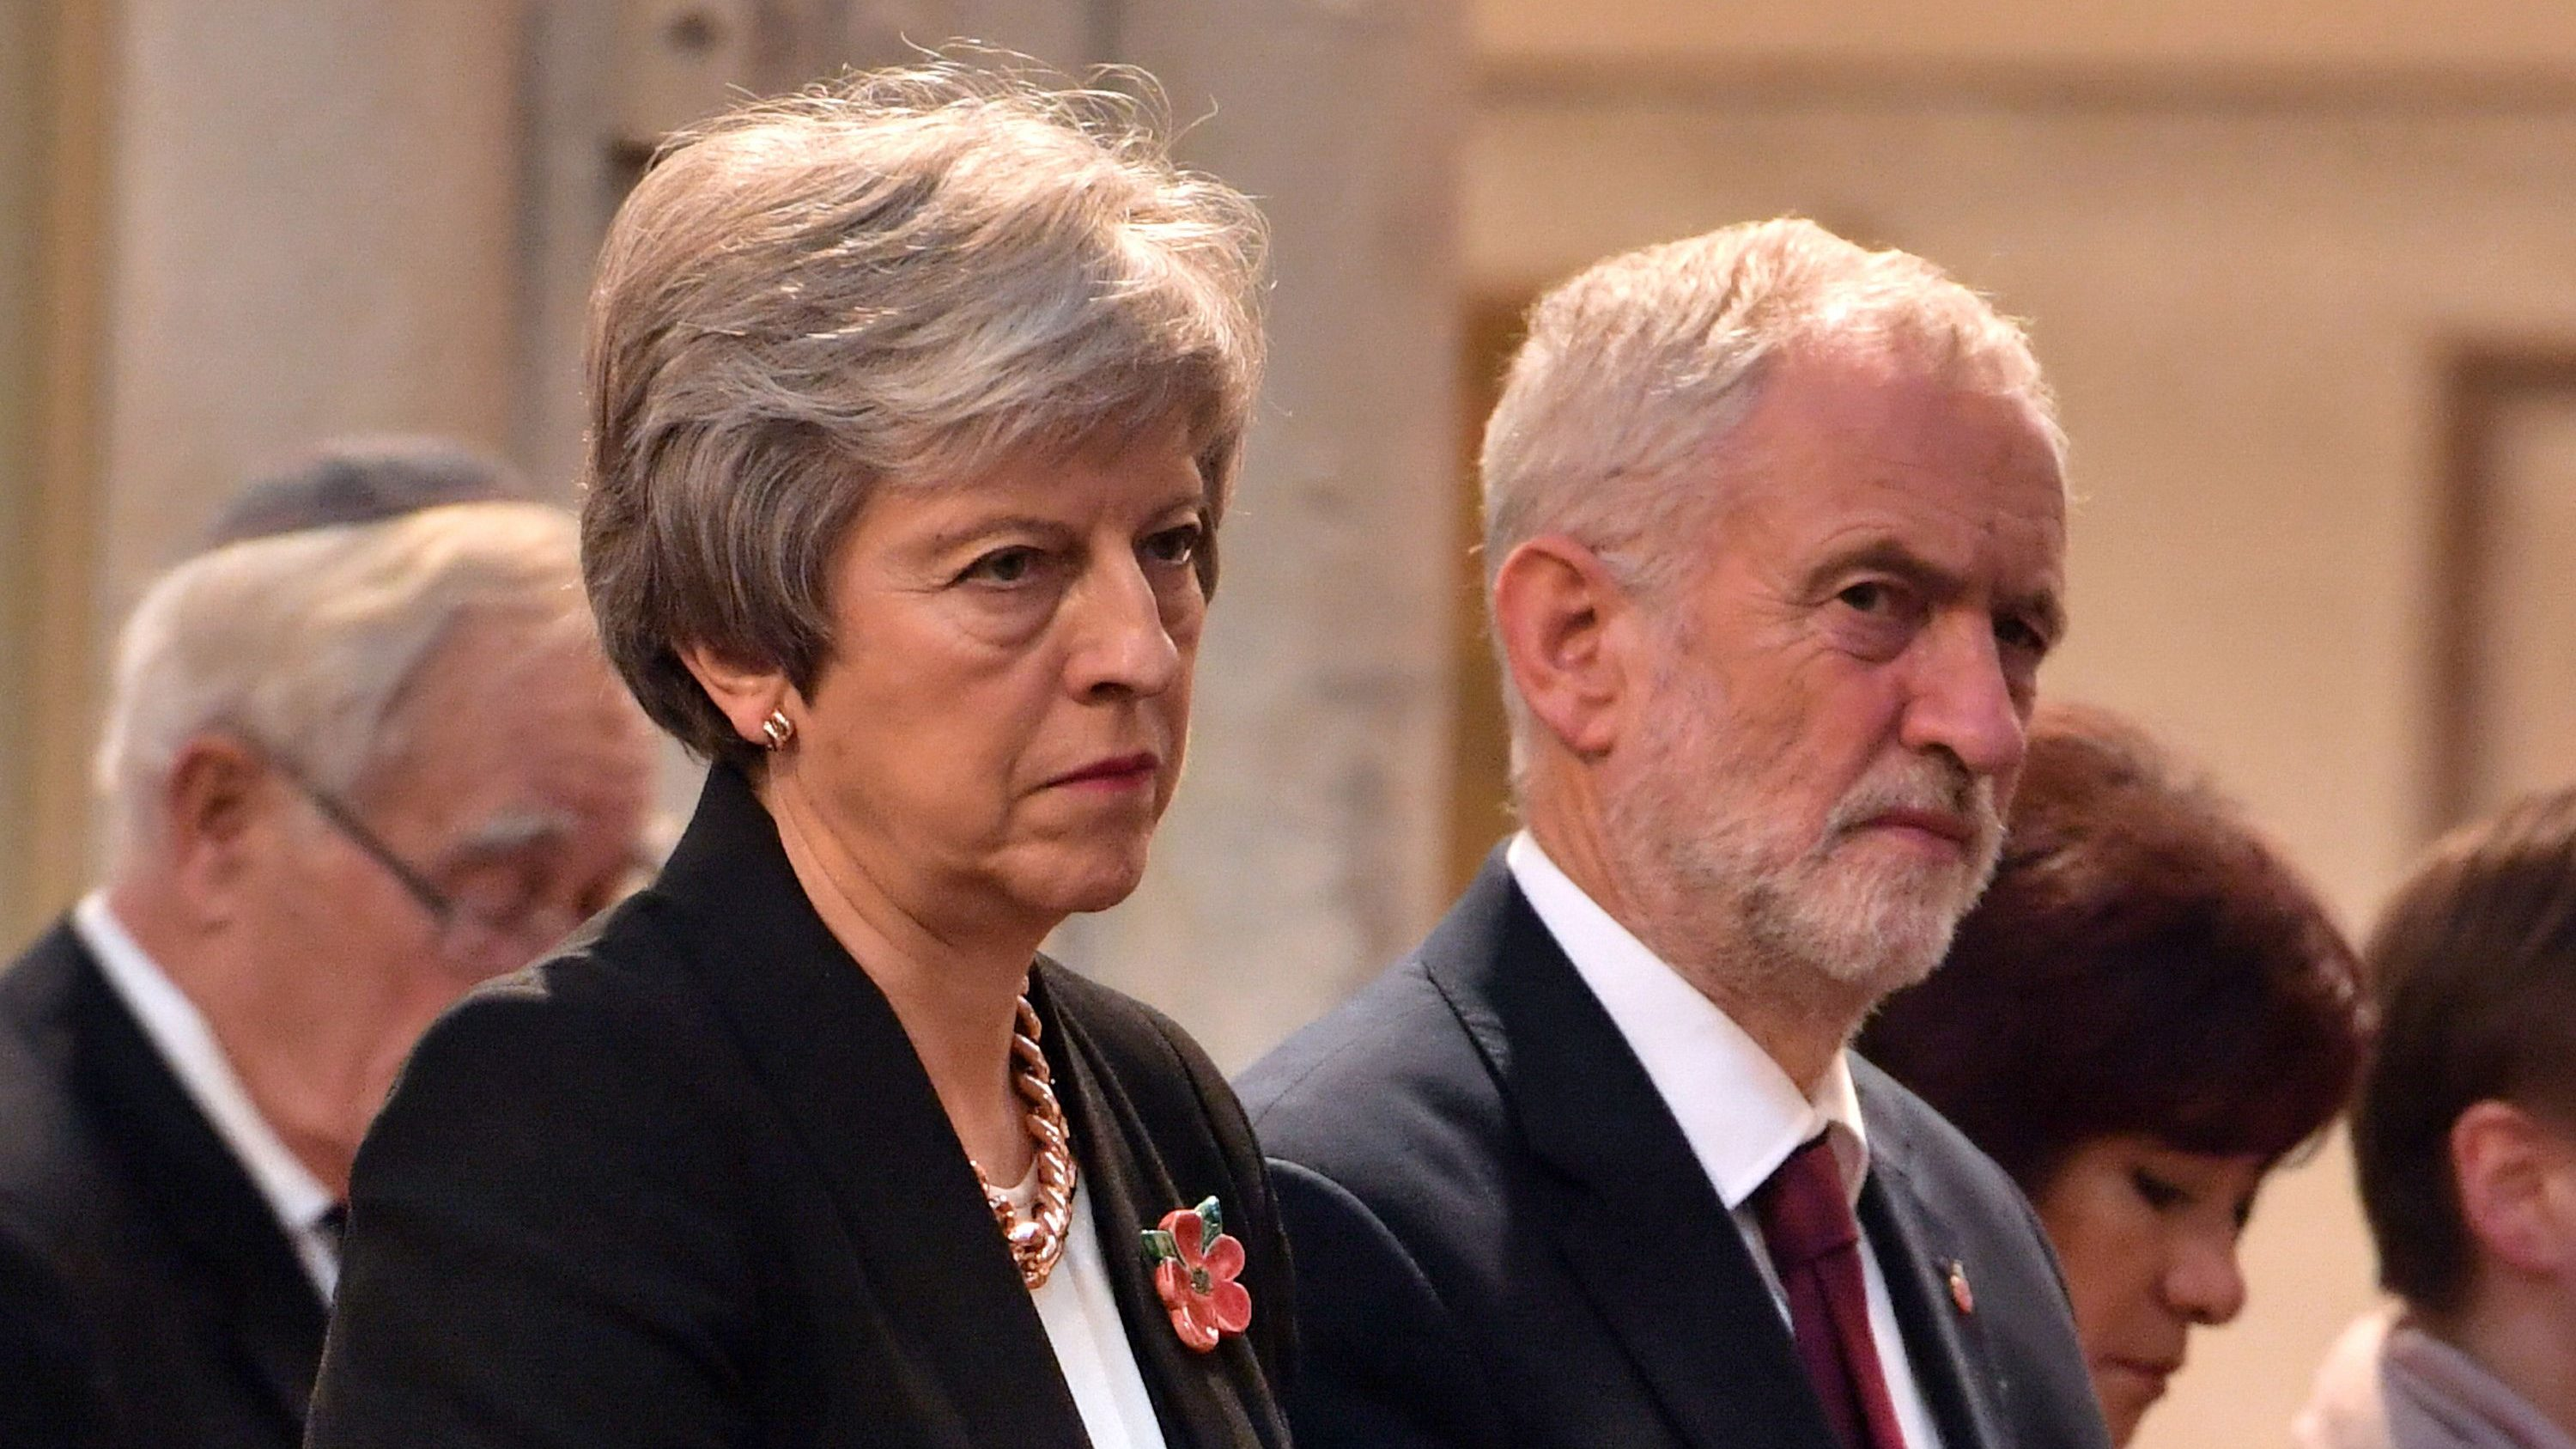 Britain's Prime Minister, Theresa May, and the leader of opposition Labour Party, Jeremy Corbyn attend an Armistice remembrance service at St Margaret's Church in London